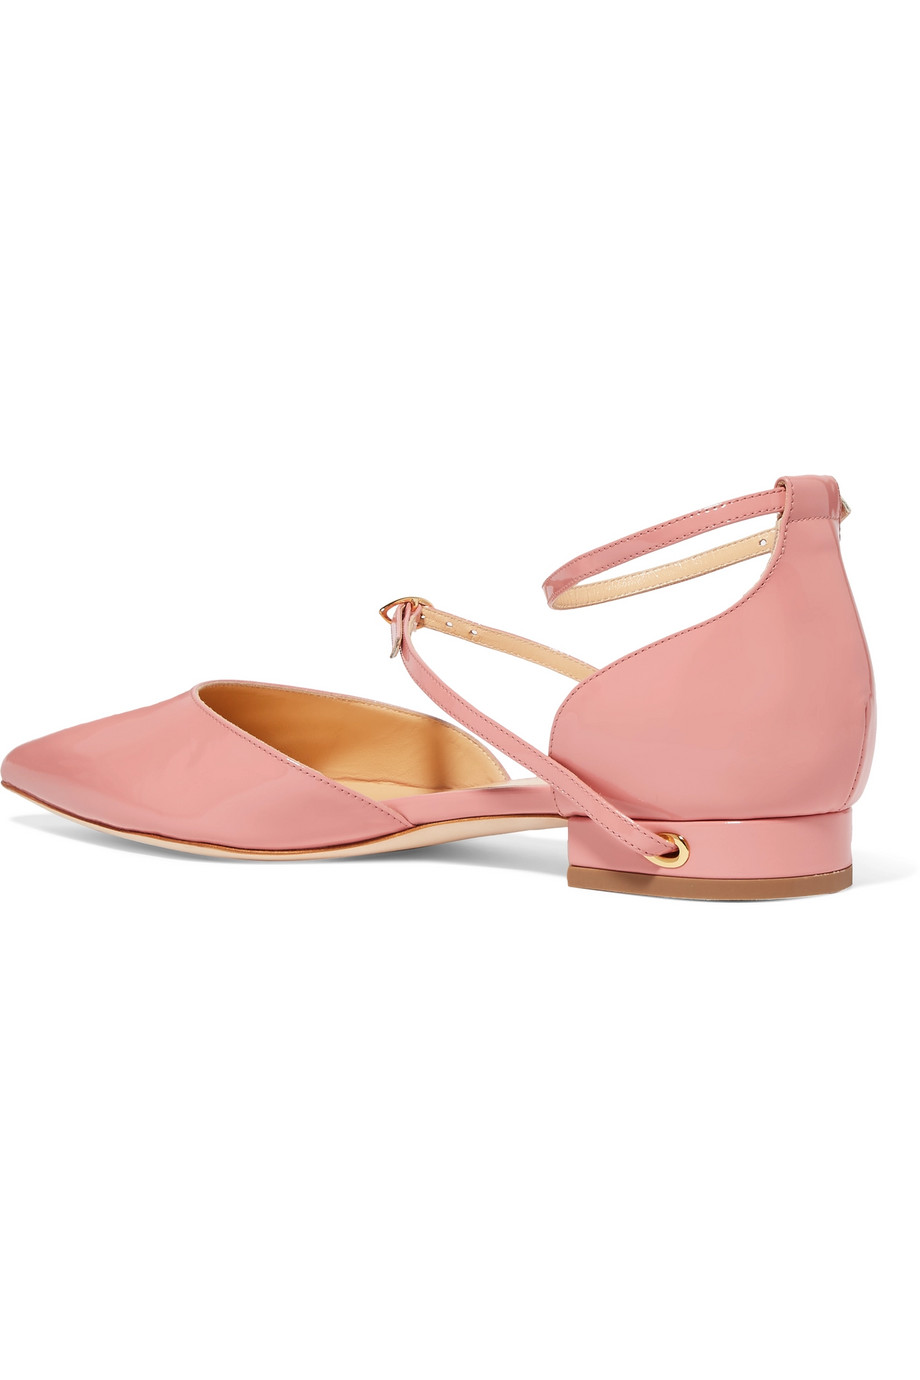 Leather ballerinas Jennifer Chamandi buy Leather ballerinas Jennifer Chamandi internet shop